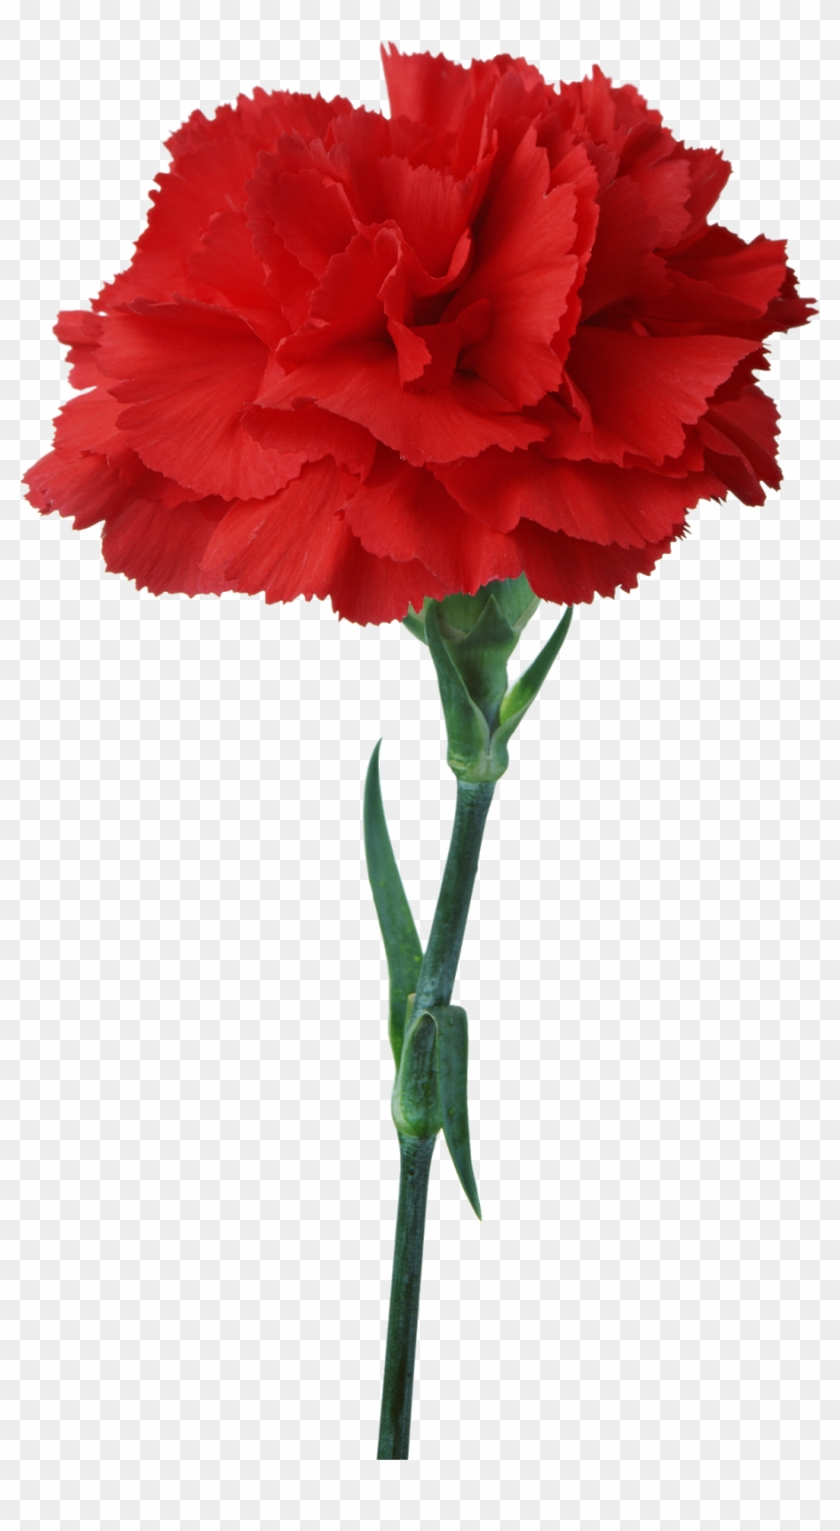 Carnation Flower Red Floristry Clip Art Carnation Flower Red